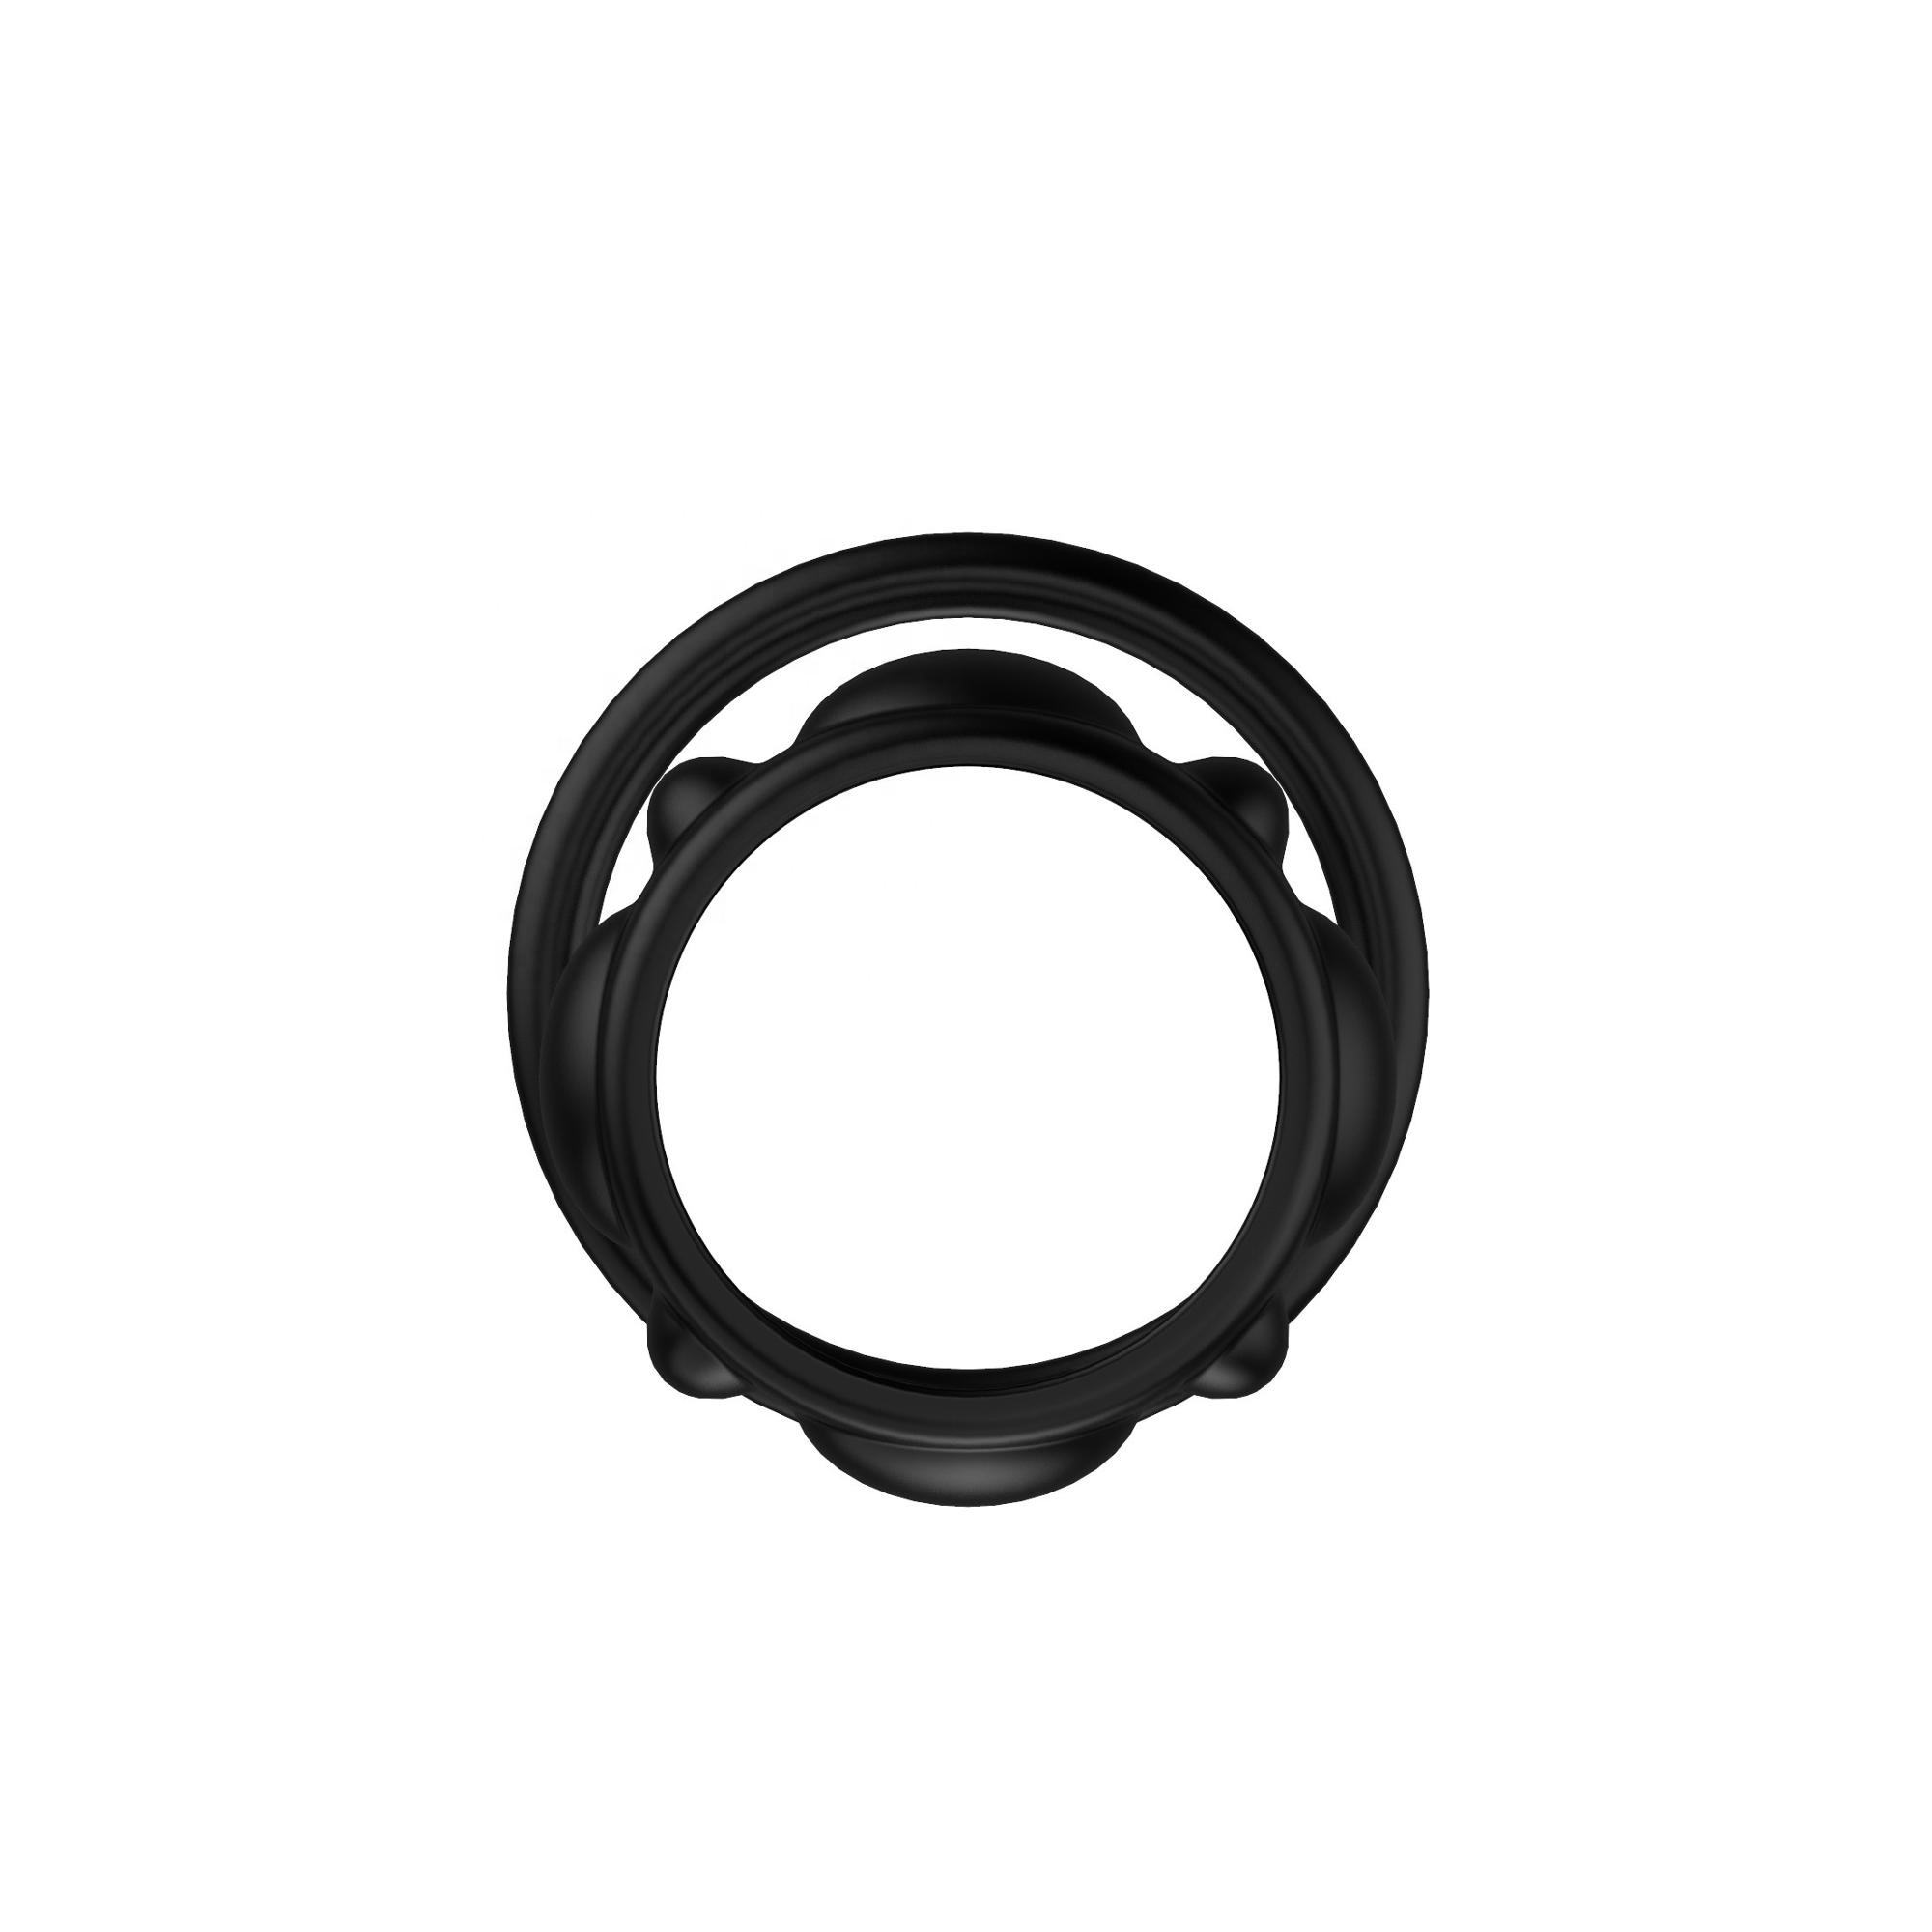 Factory Silicone Male Cock Penis Ring Rubber Men Ejaculation Men Fully Adjustable G Spot <span class=keywords><strong>DIY</strong></span> <span class=keywords><strong>Sex</strong></span> Toys Delay Penis Ring Dildo